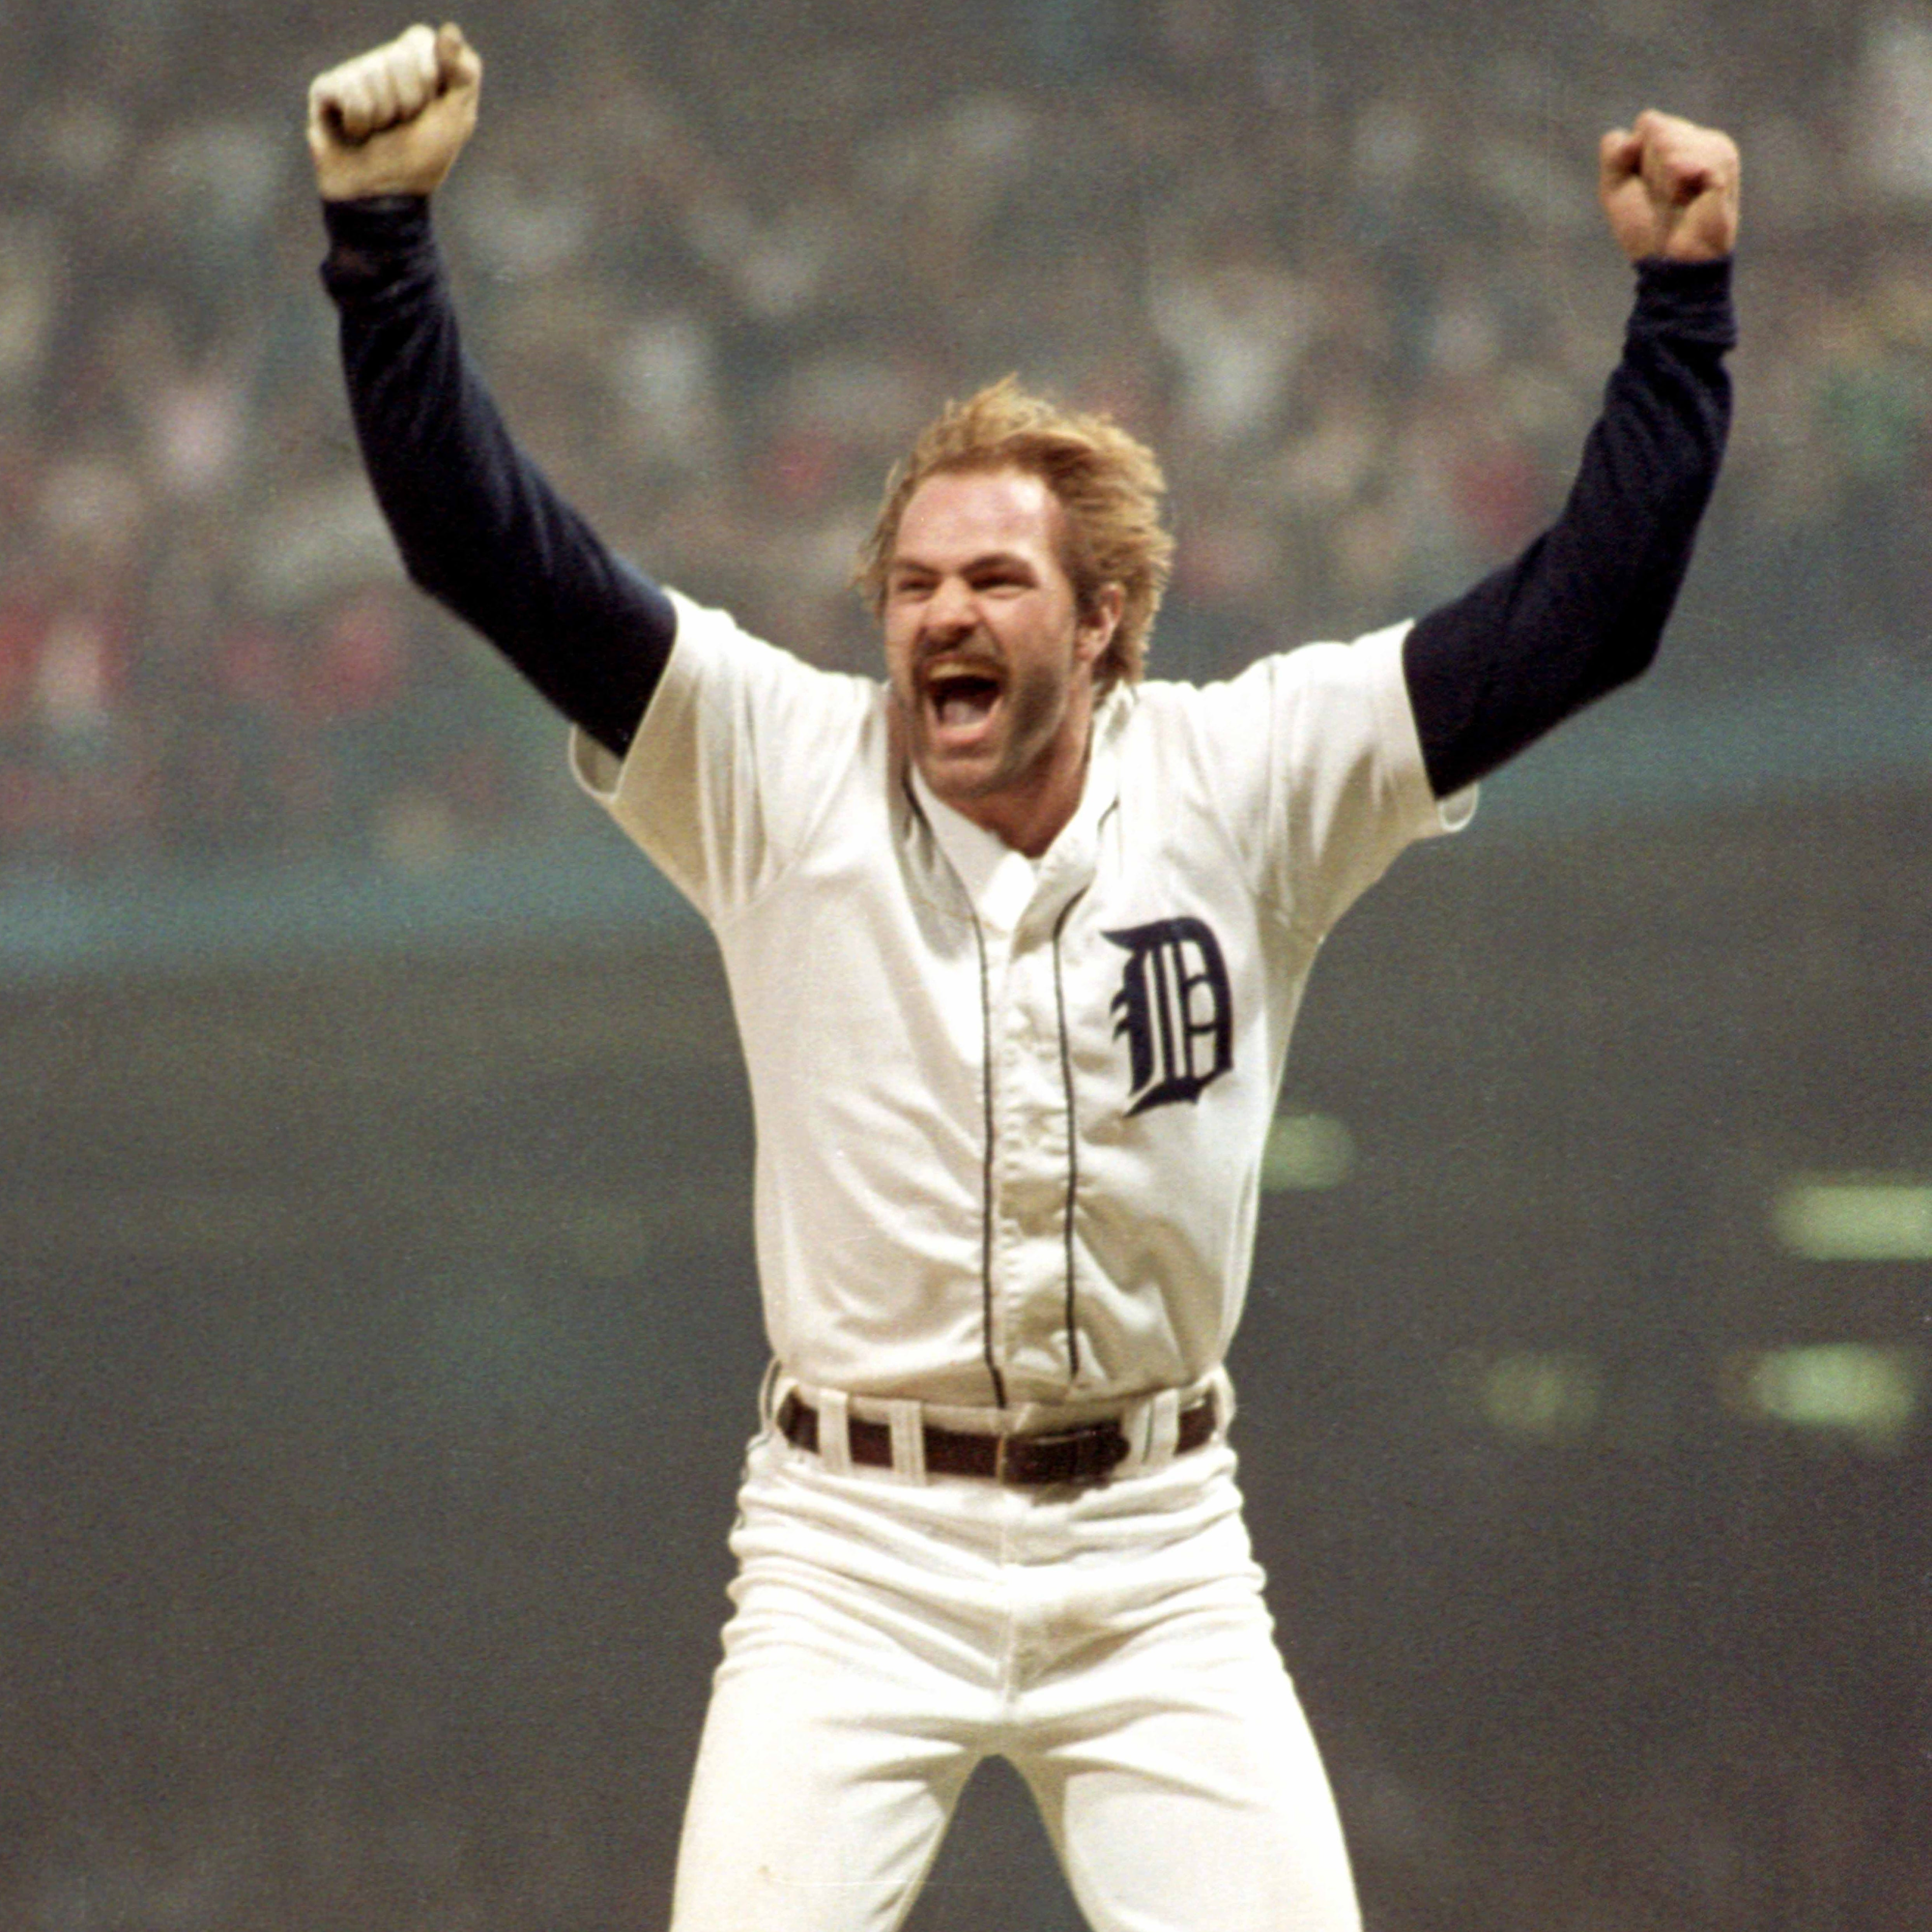 Tigers outfielder Kirk Gibson celebrates his eighth-inning home run in Game 5 of the World Series on Oct. 14, 1984, at Tiger Stadium.